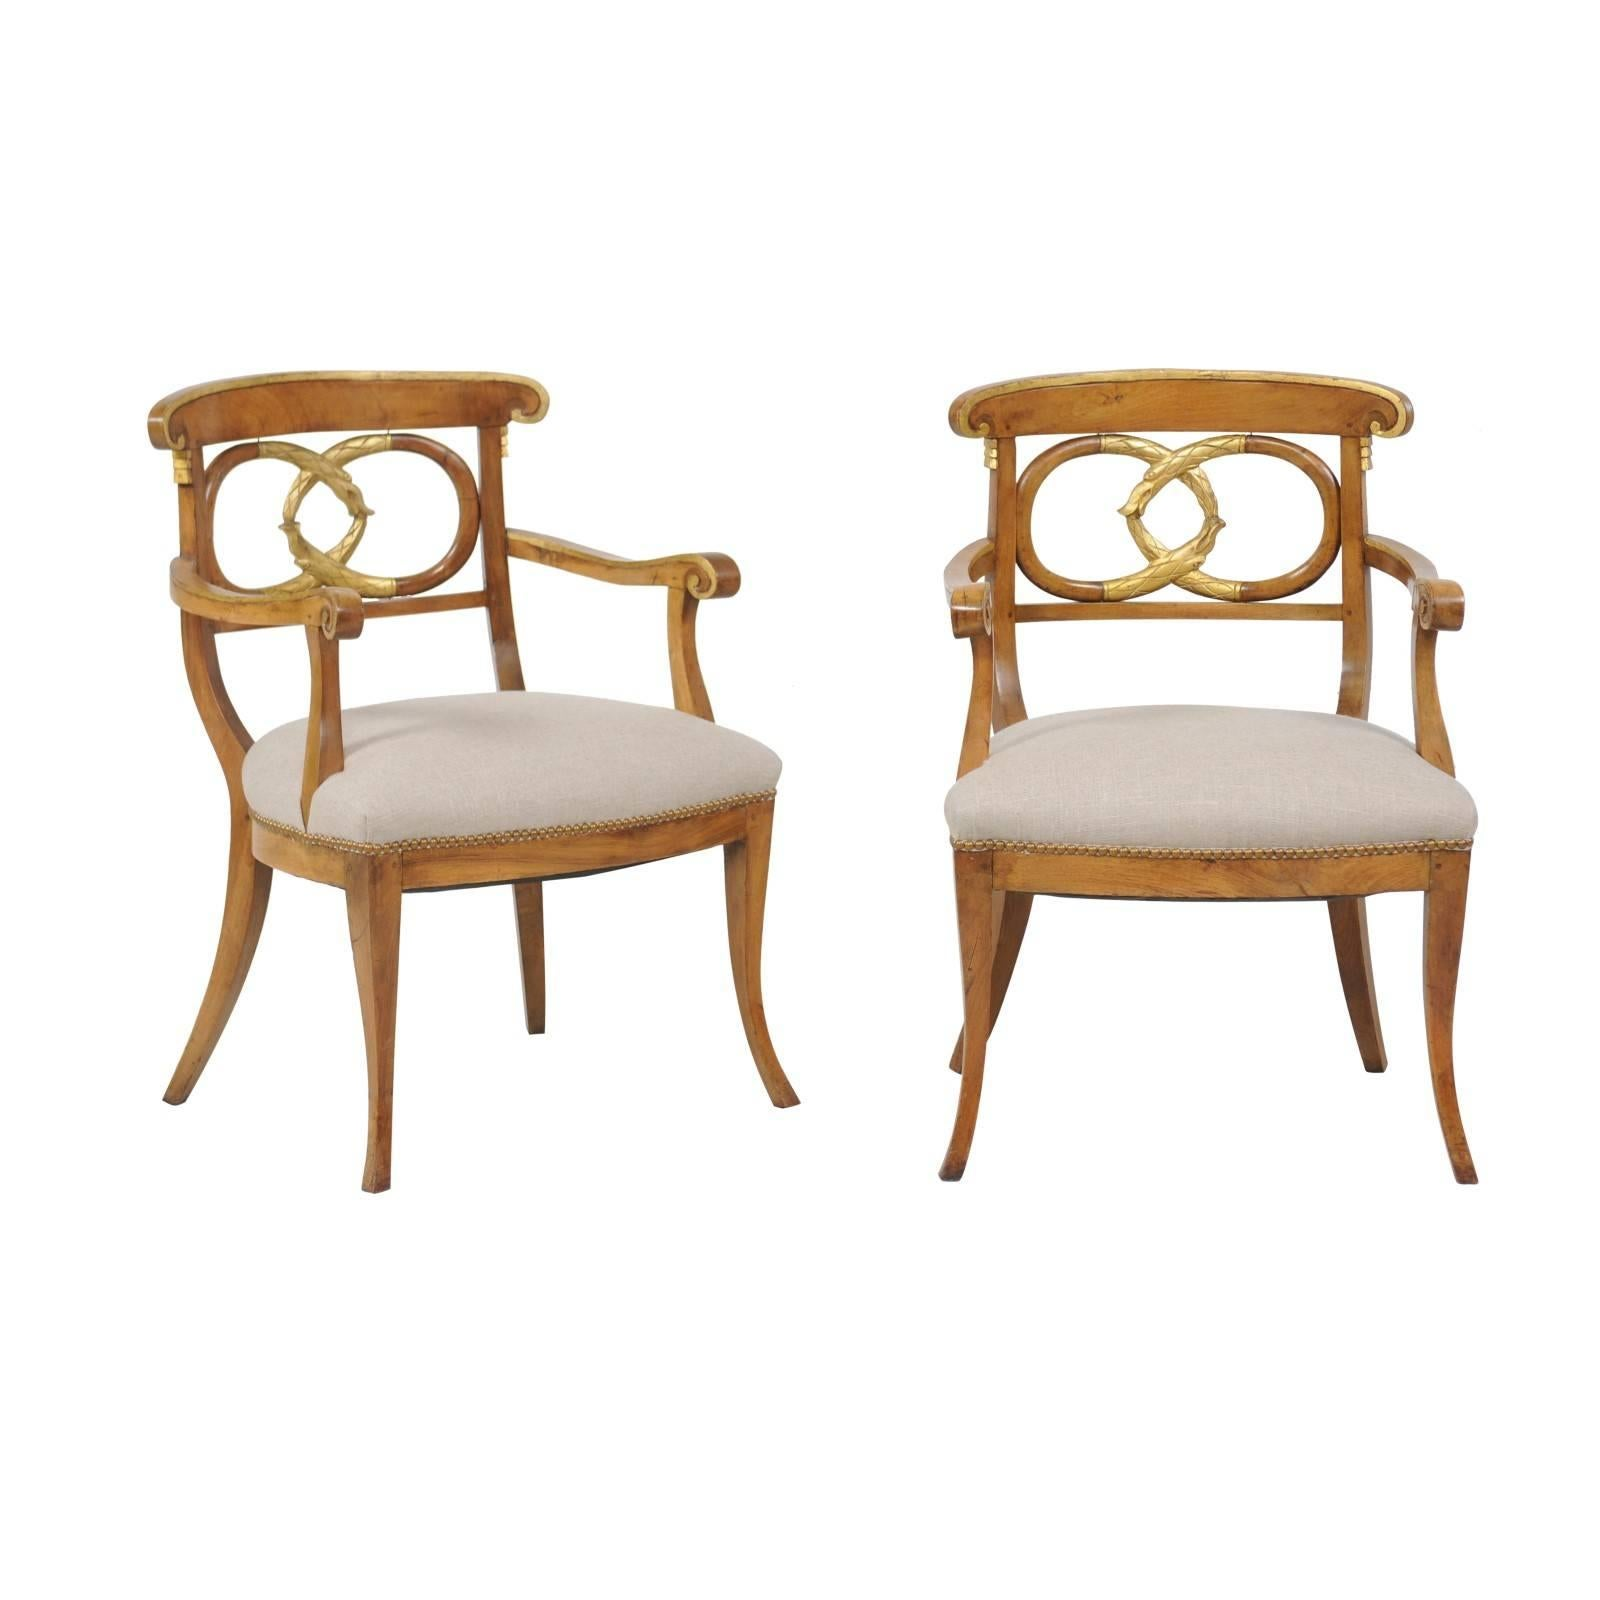 Pair of Italian 1860s Parcel-Gilt Walnut Upholstered Chairs with Serpent Motifs